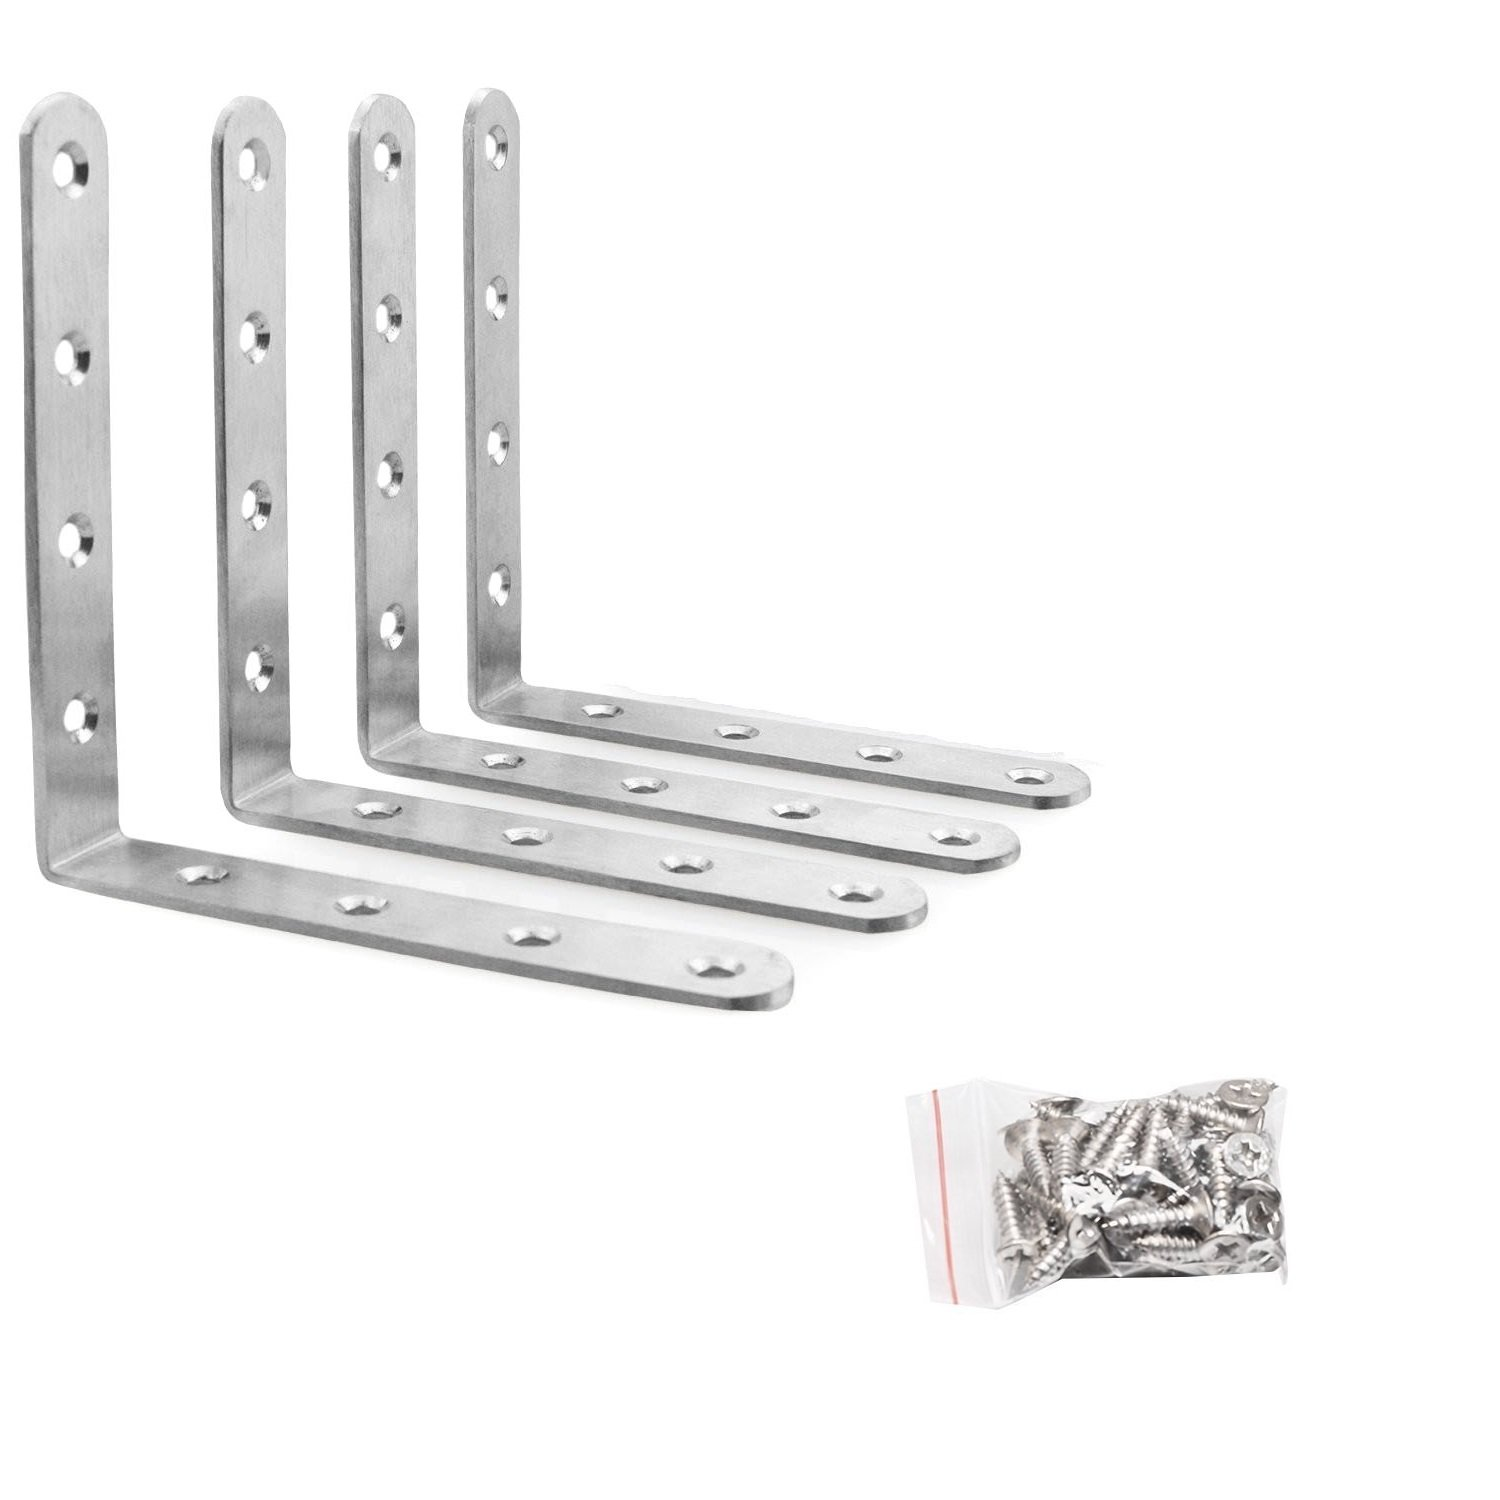 90 Degree Right Angle Brackets Stainless Steel Corner Braces with Screws(125mm x 125mm(5'' x 5'')), 4 Pack by Farmunion